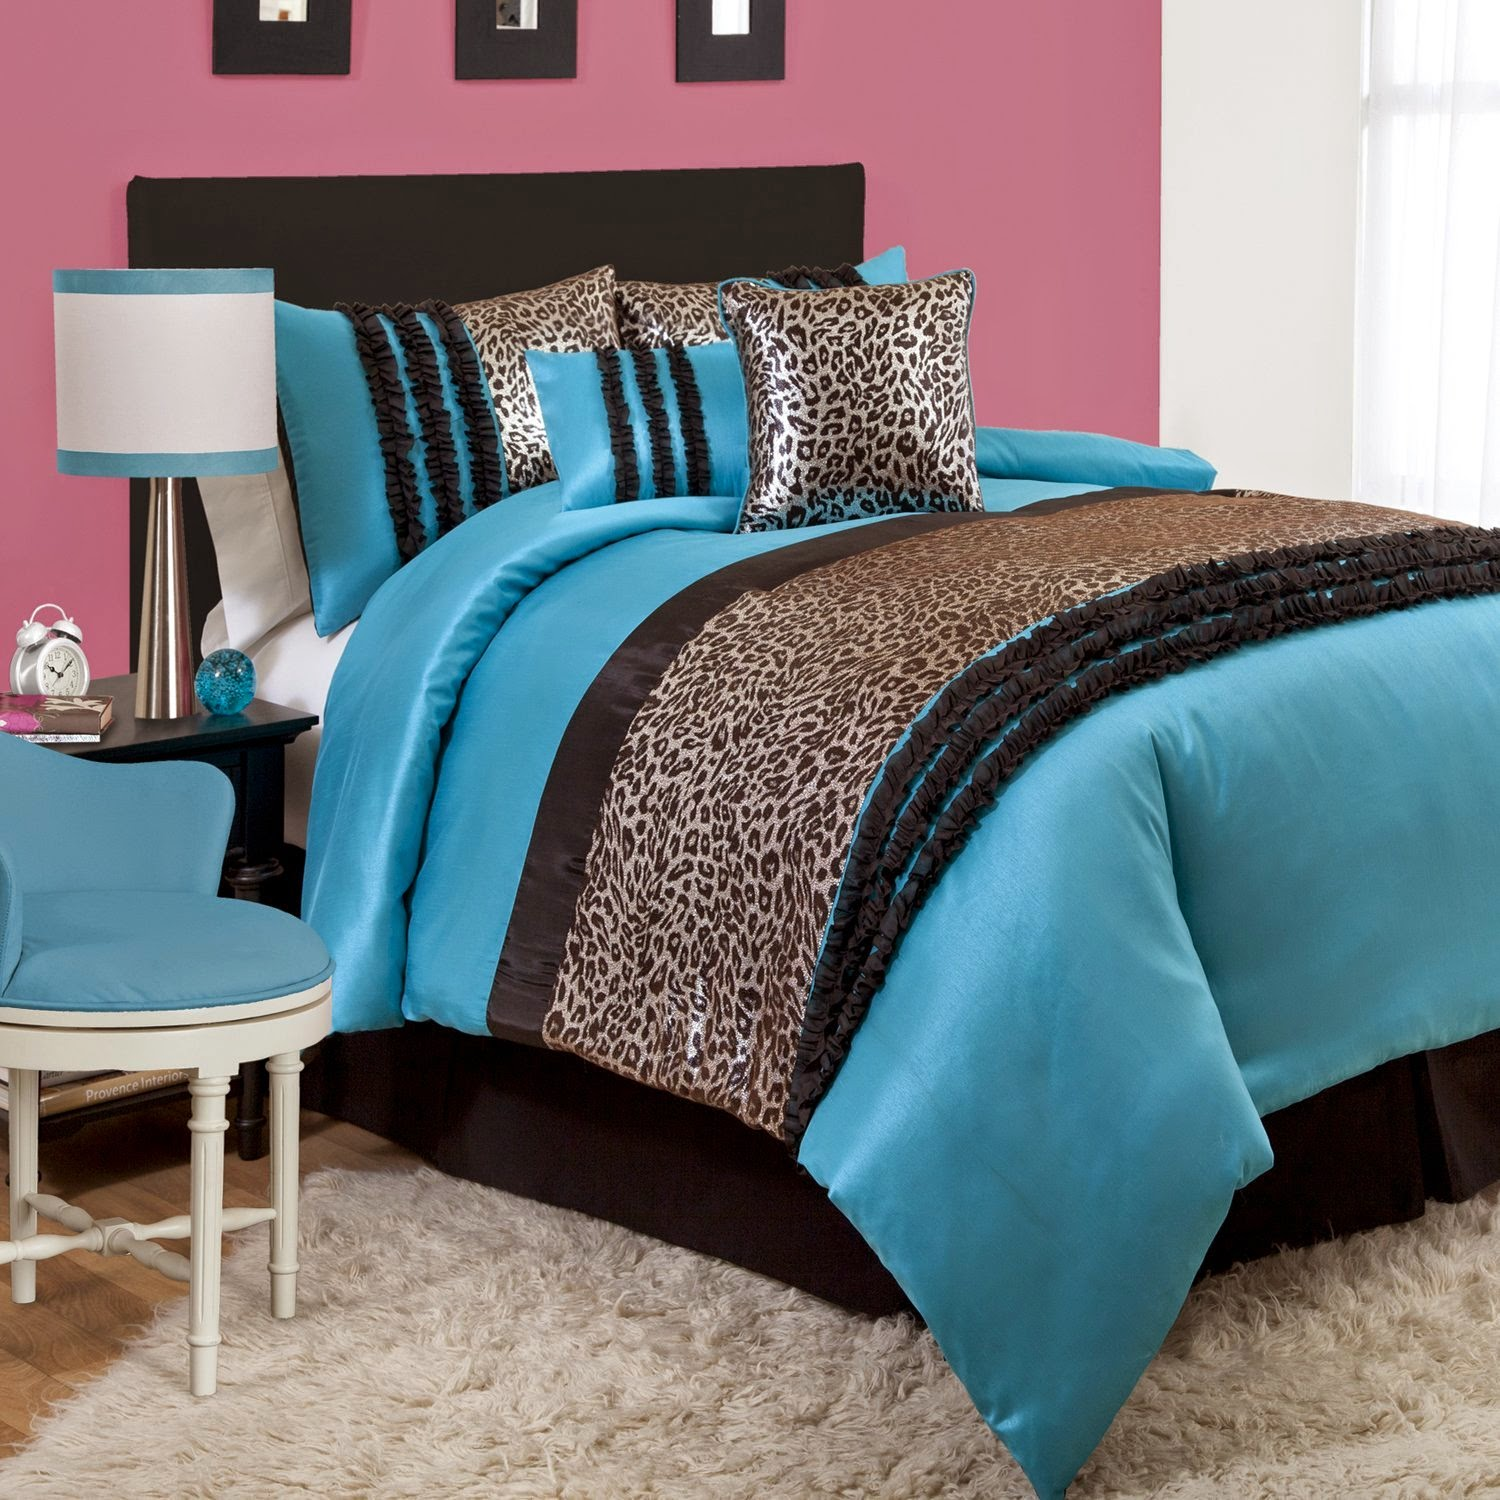 Zebra print bedroom set - Bedroom Decor Ideas Designs Ten Animal Pattern Bedding Lush Decor Kenya Comforter Set Leopard Print